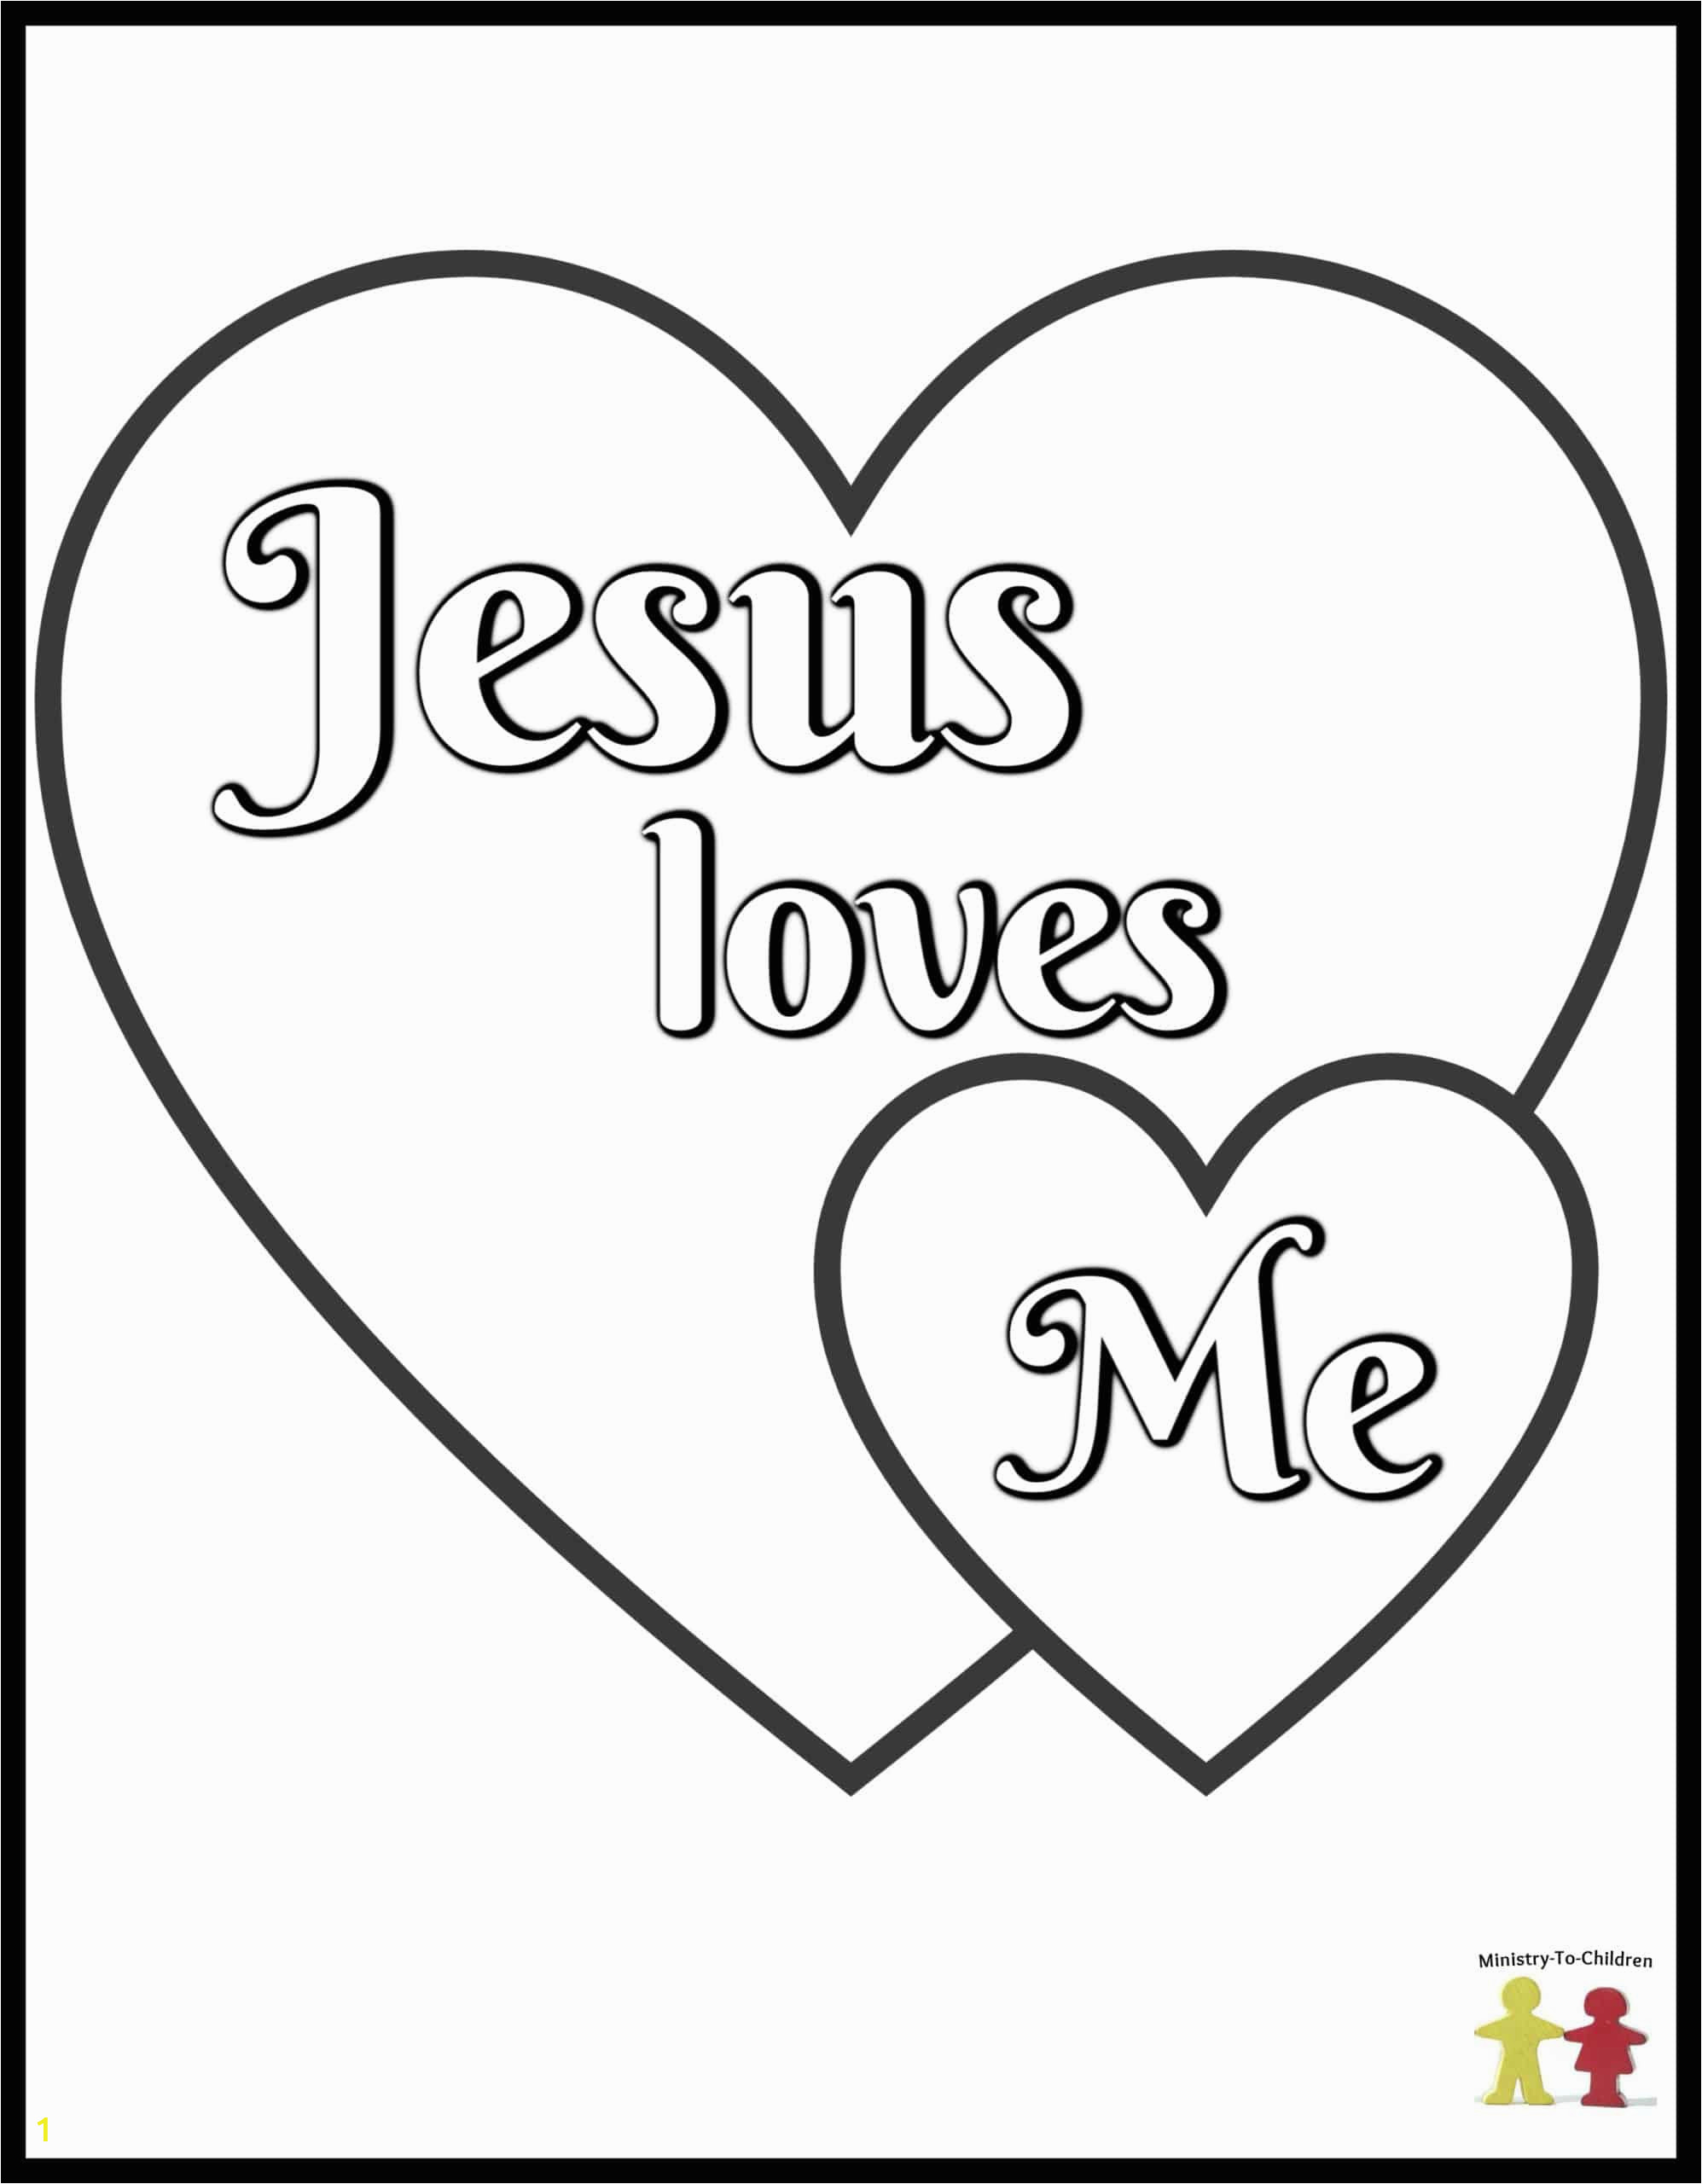 Coloring Pages for Jesus Loves Me Preschool Coloring Pages Easy Pdf Printables Ministry to